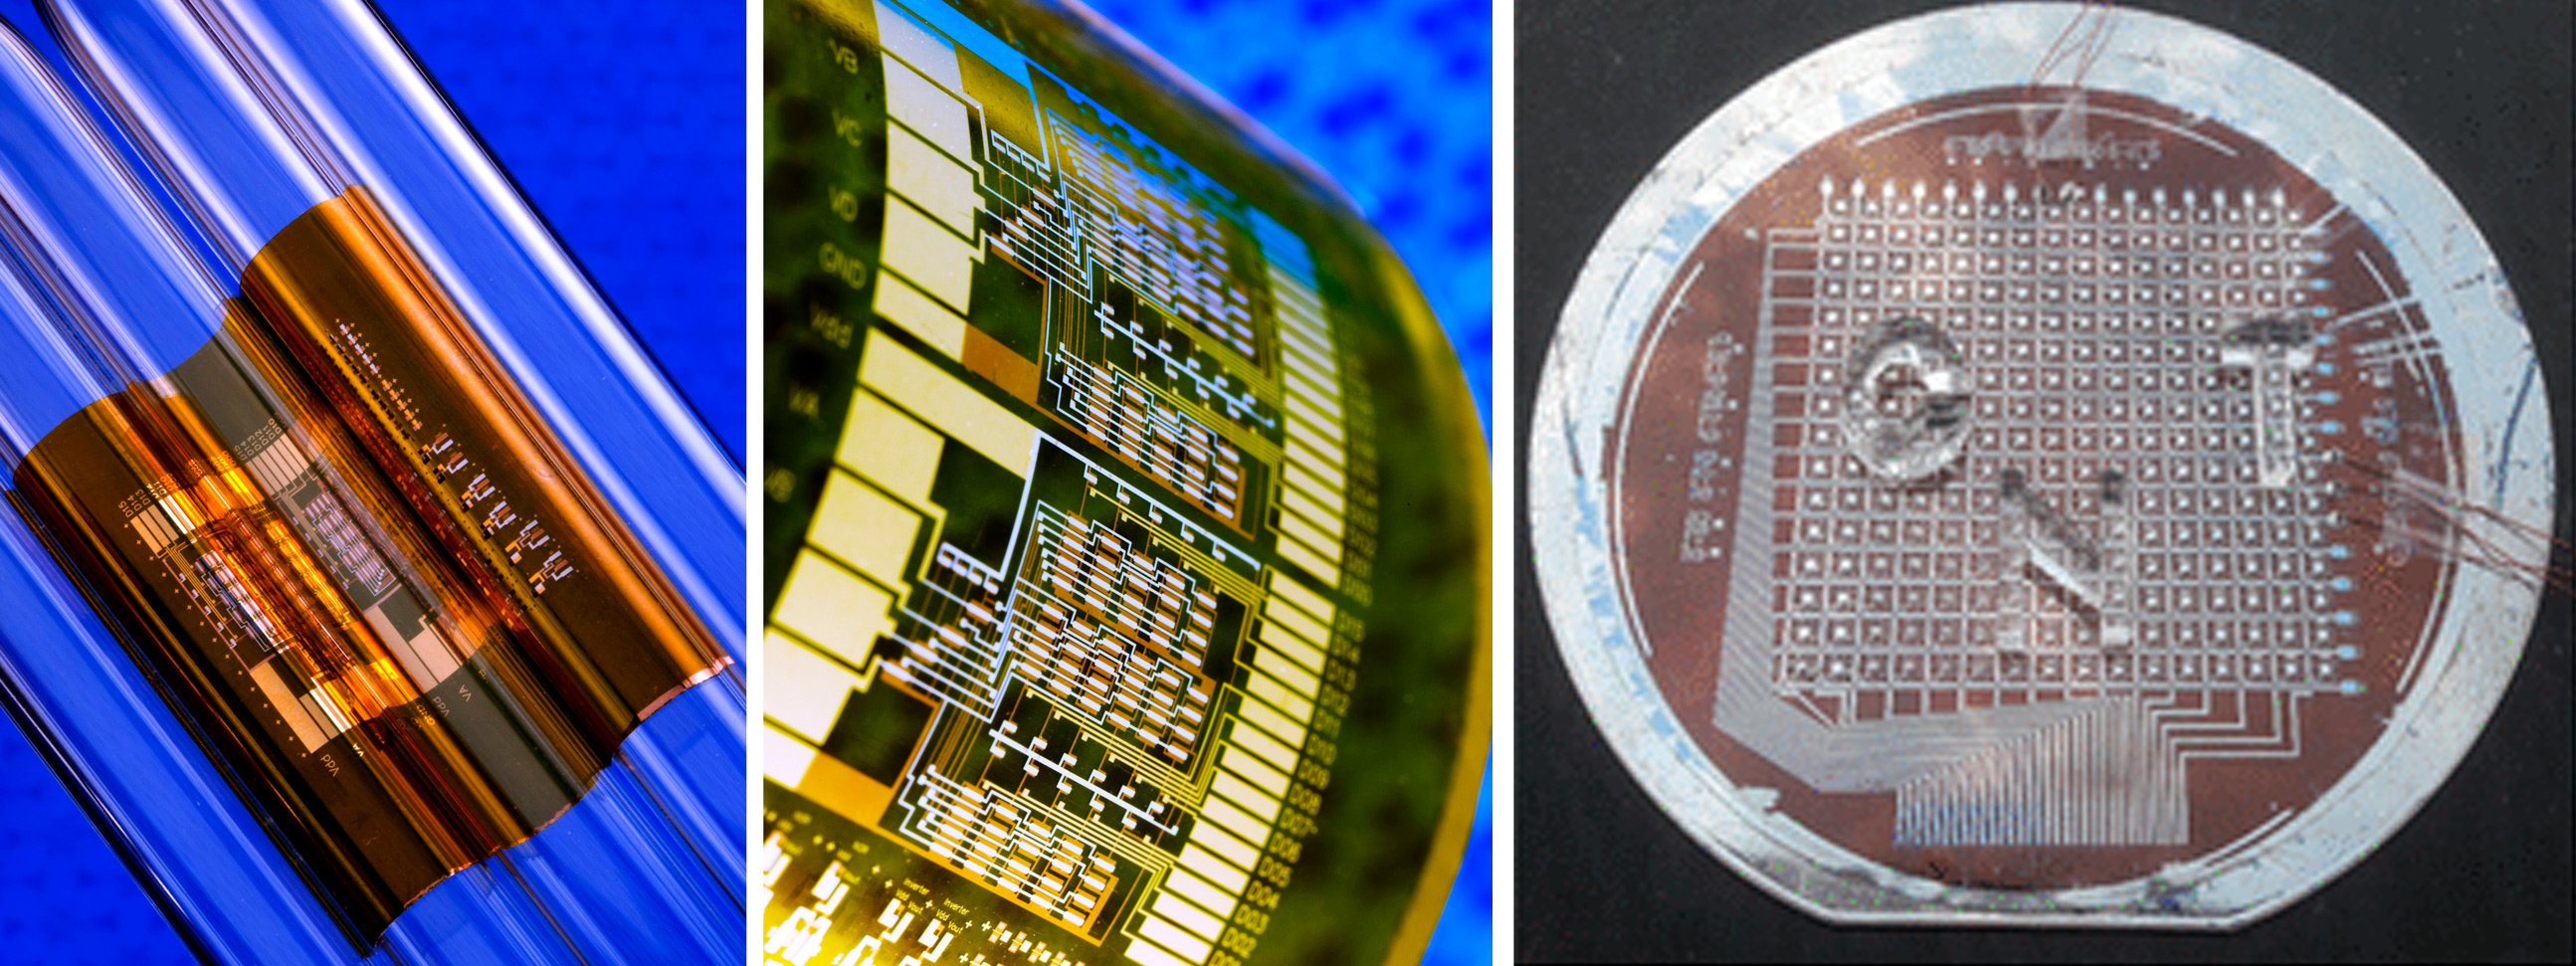 flexible electronics materials and applications